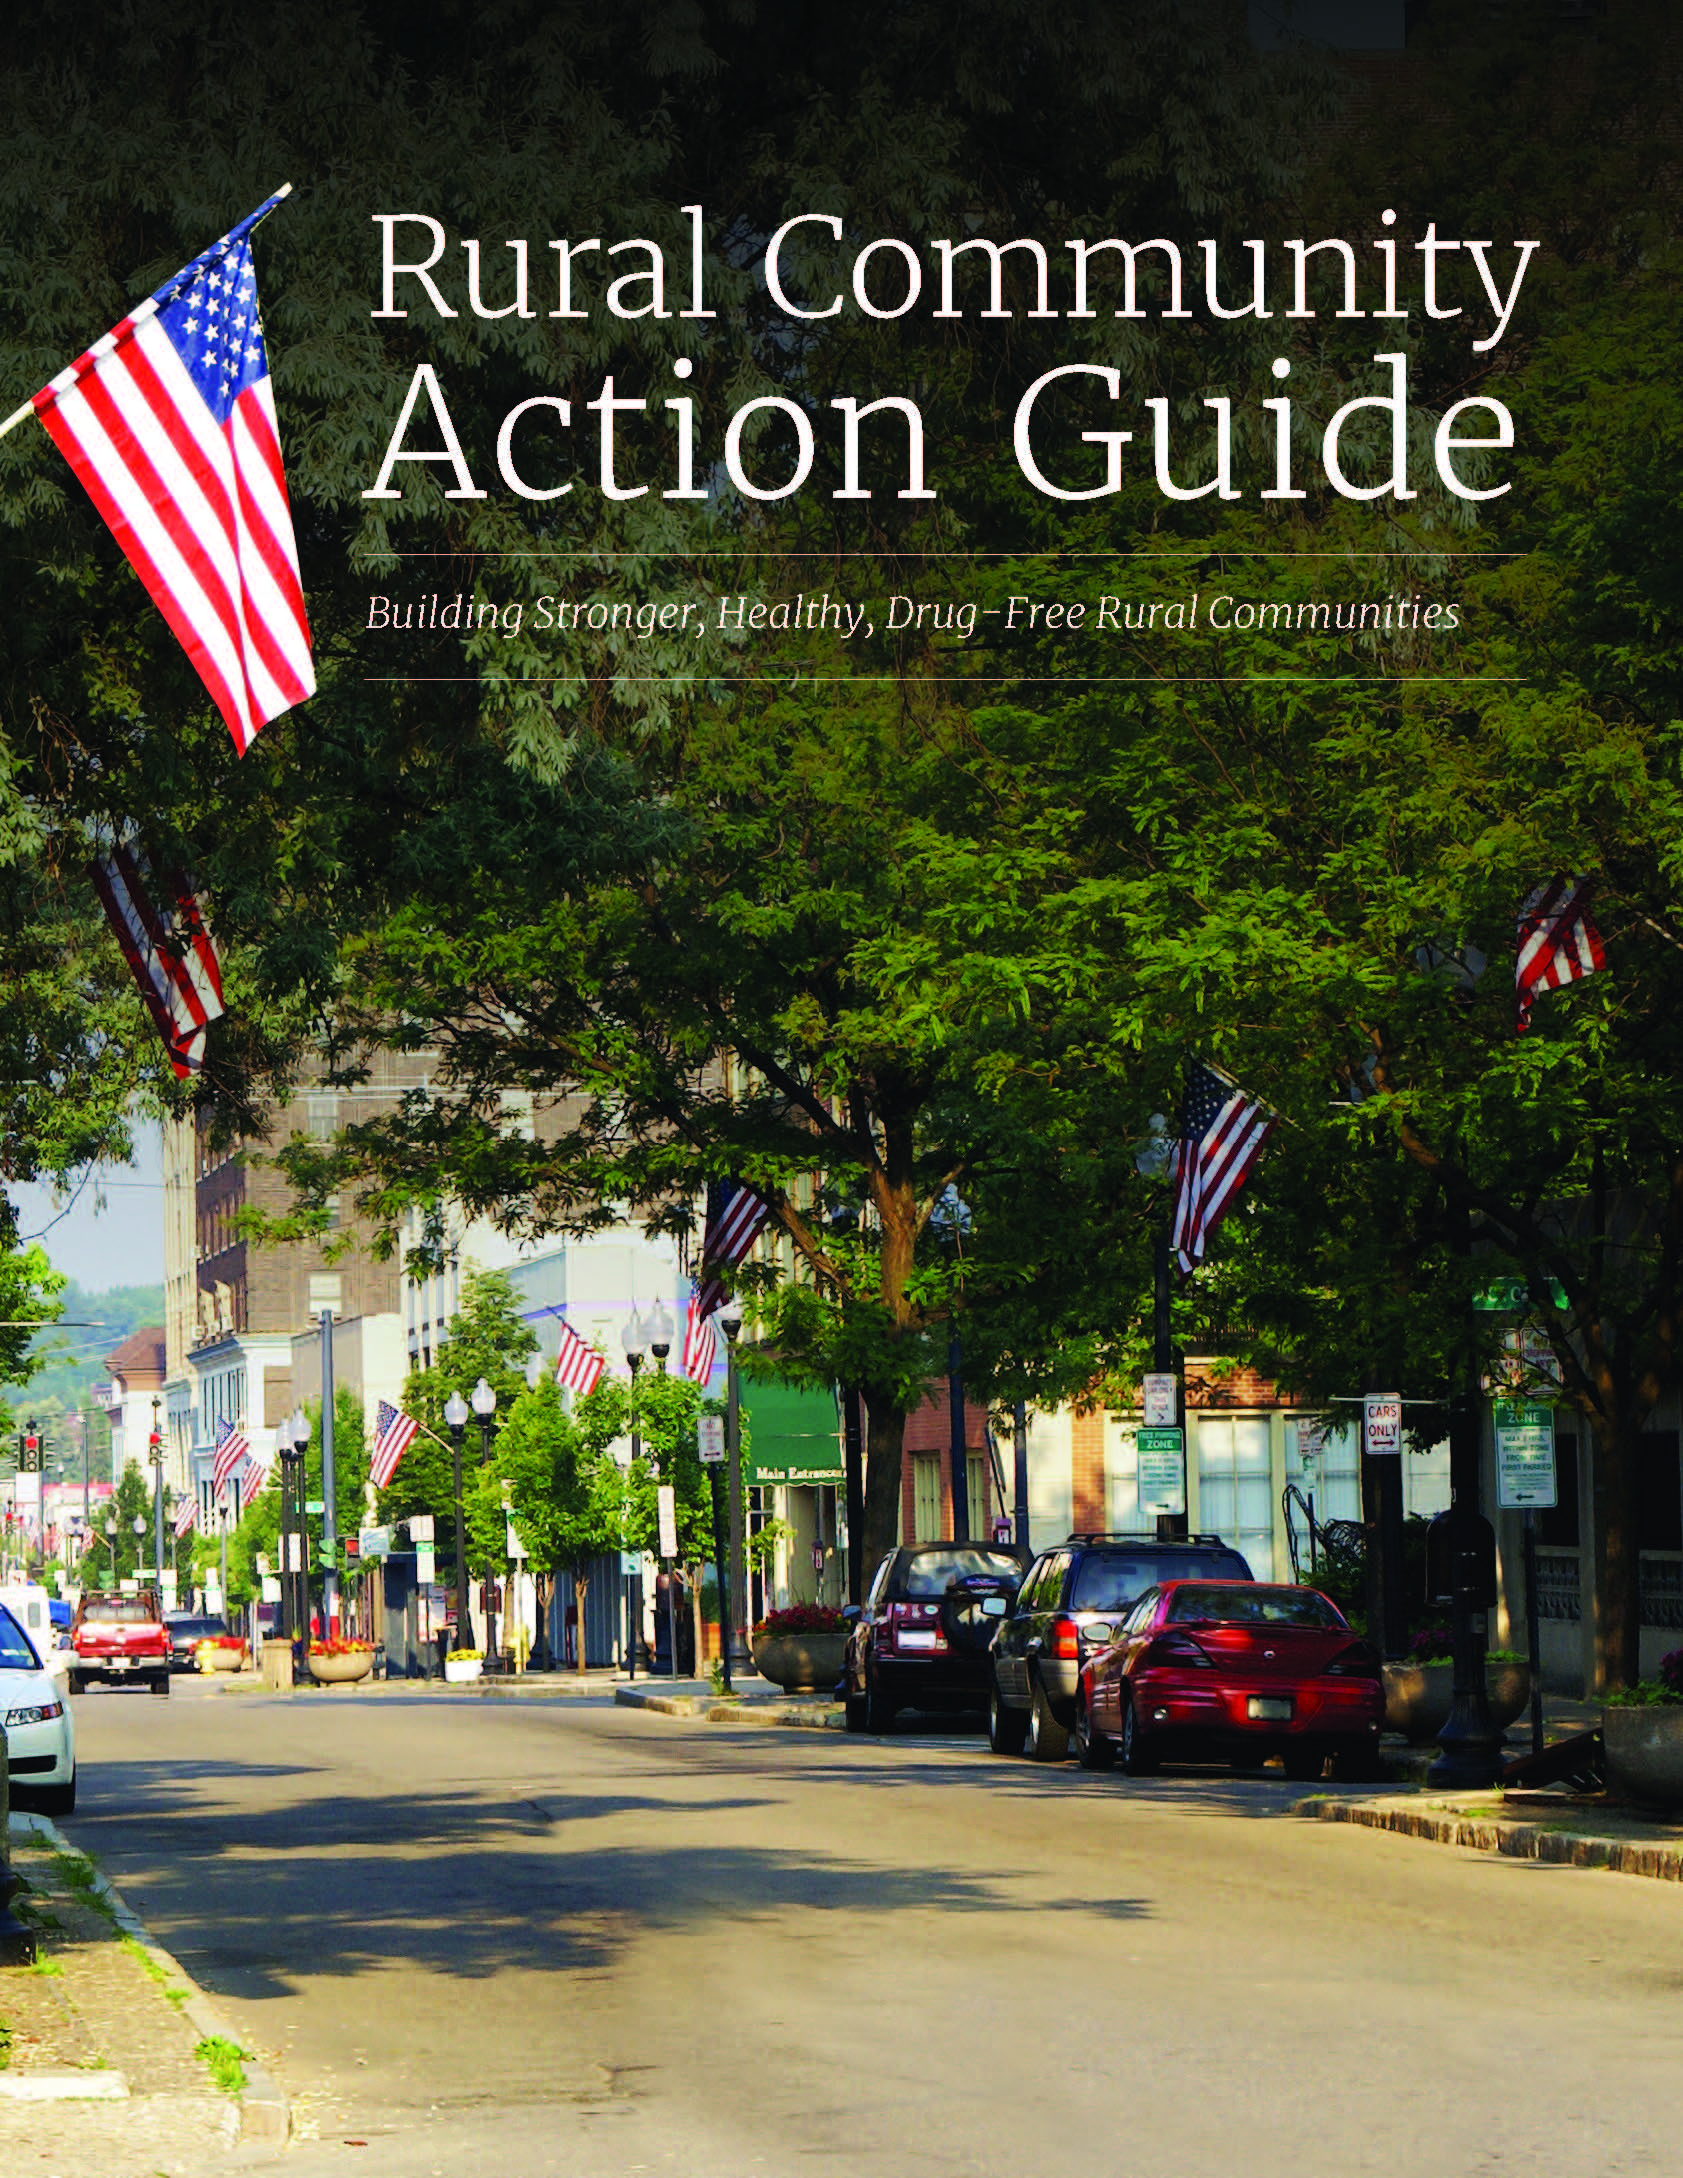 rural-community-action-guide.jpg - Cover